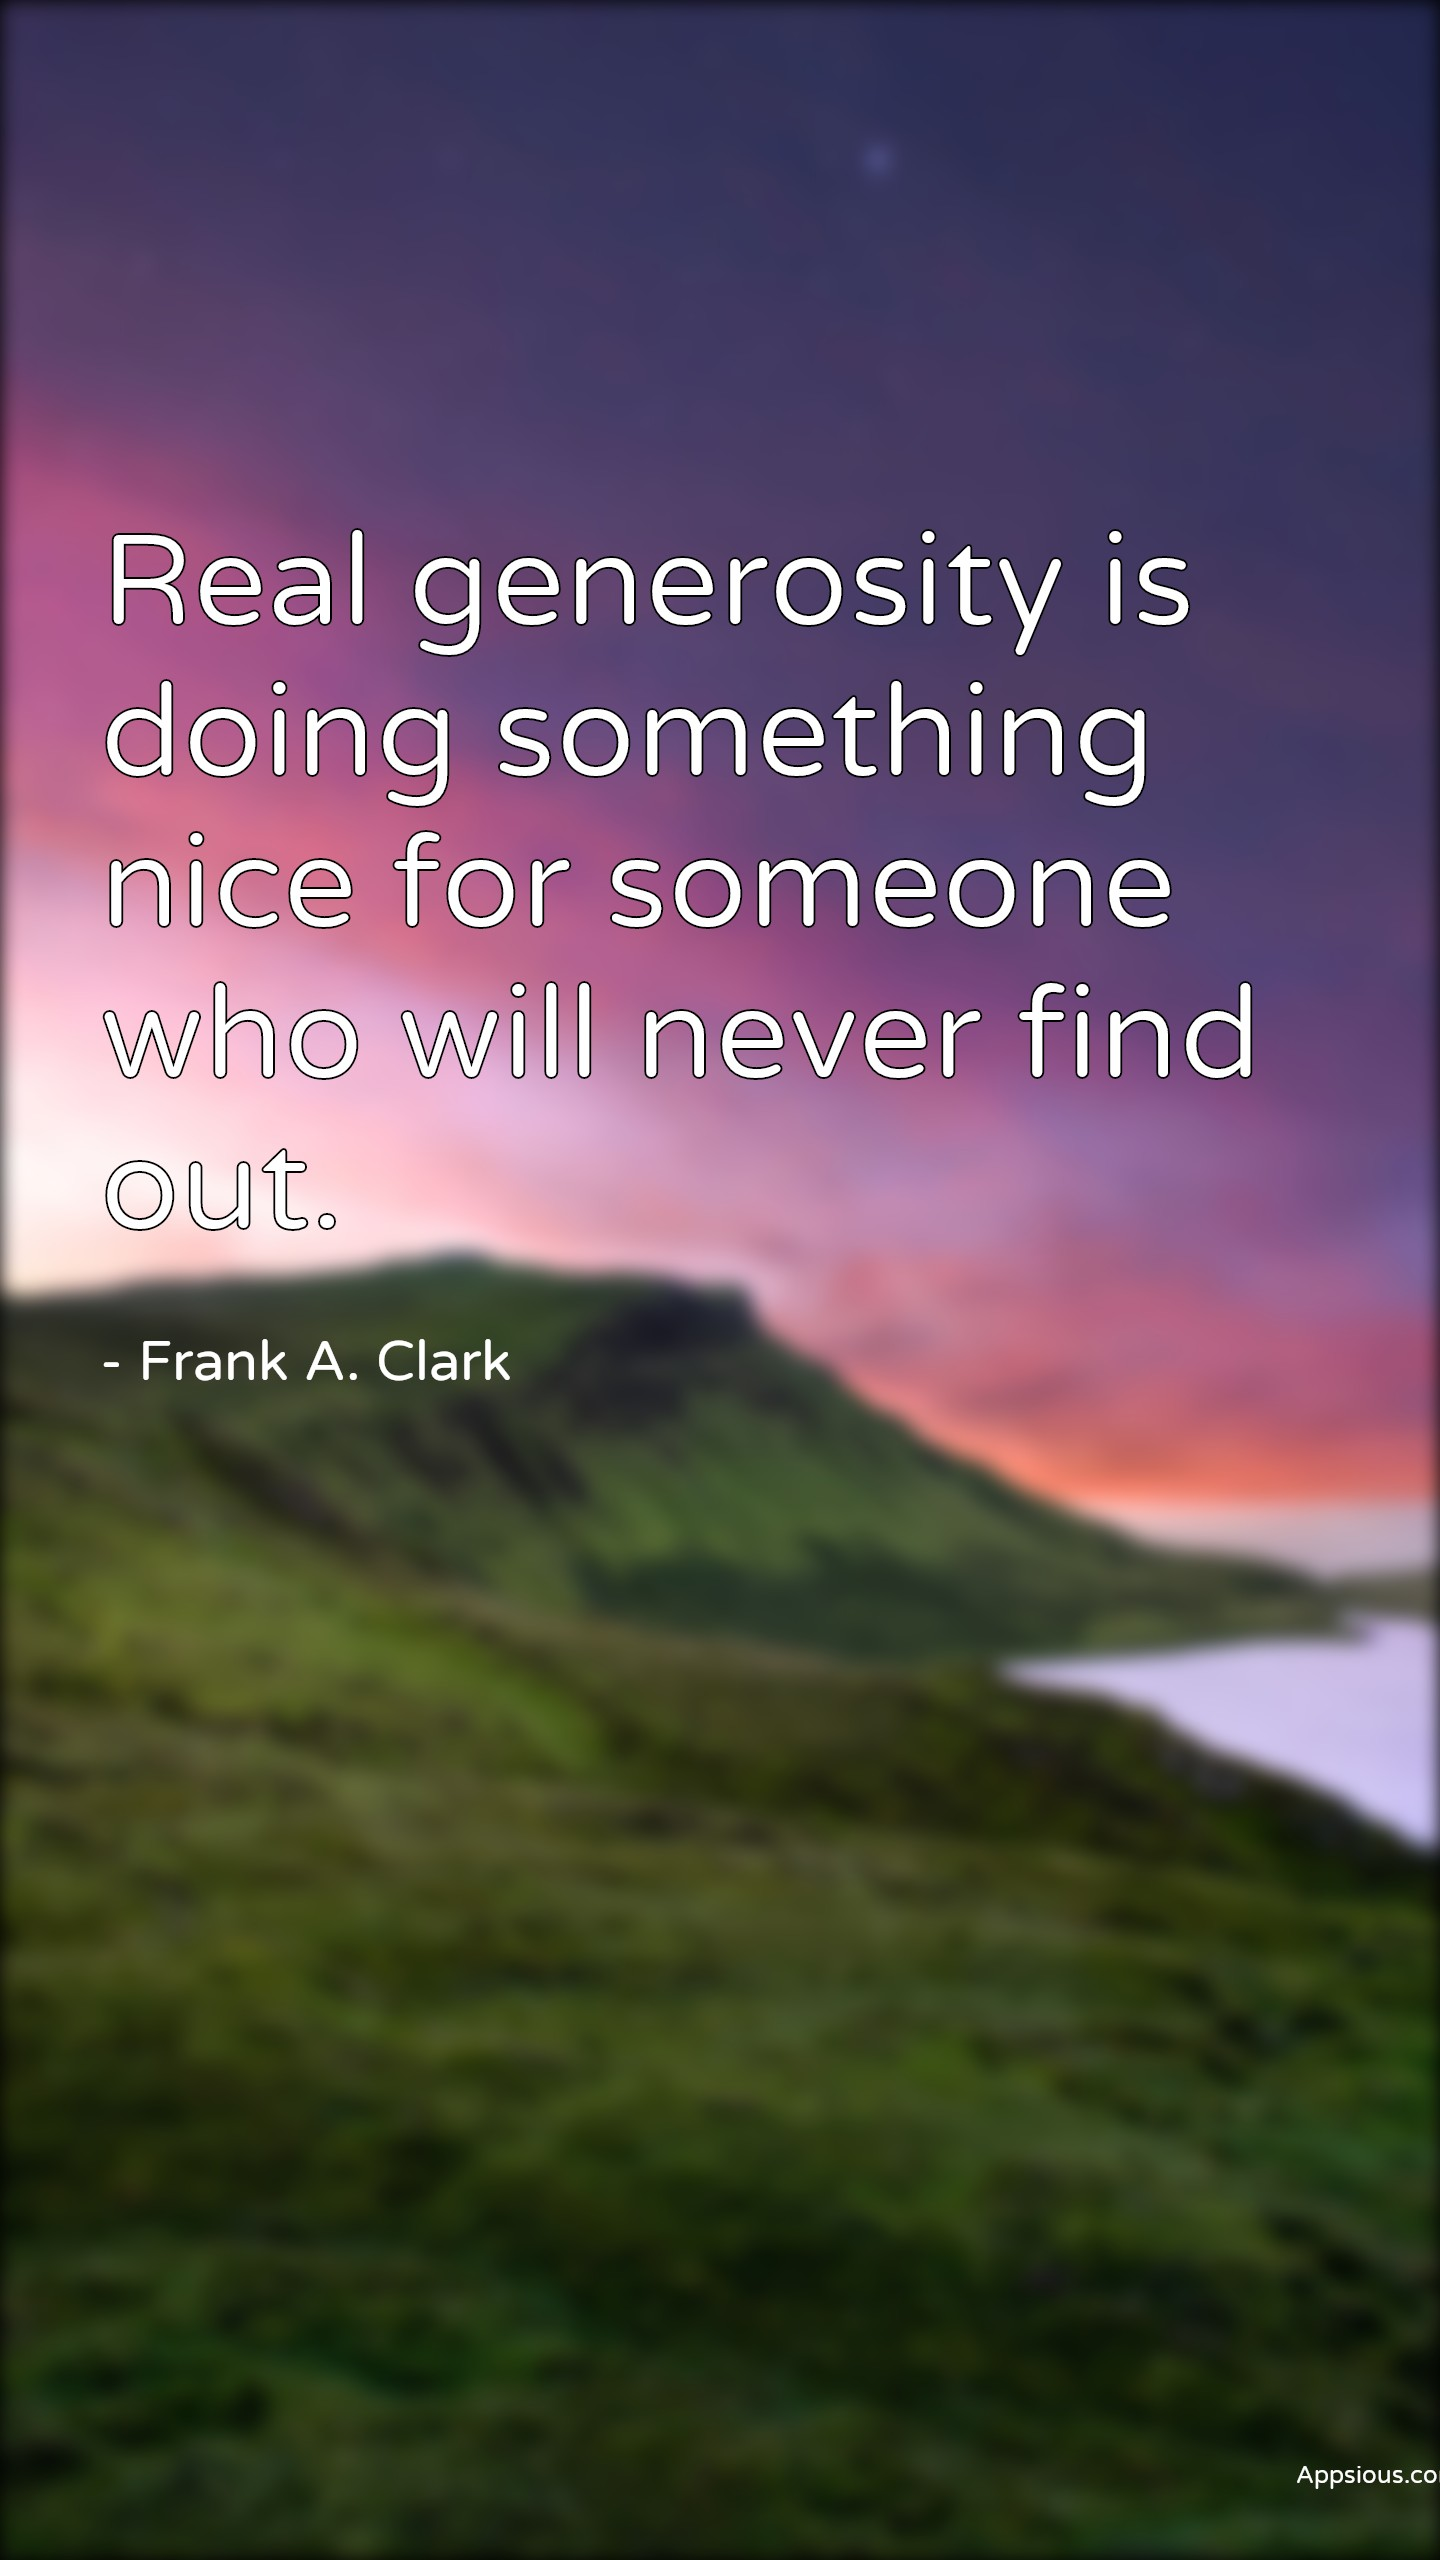 Real generosity is doing something nice for someone who will never find out.